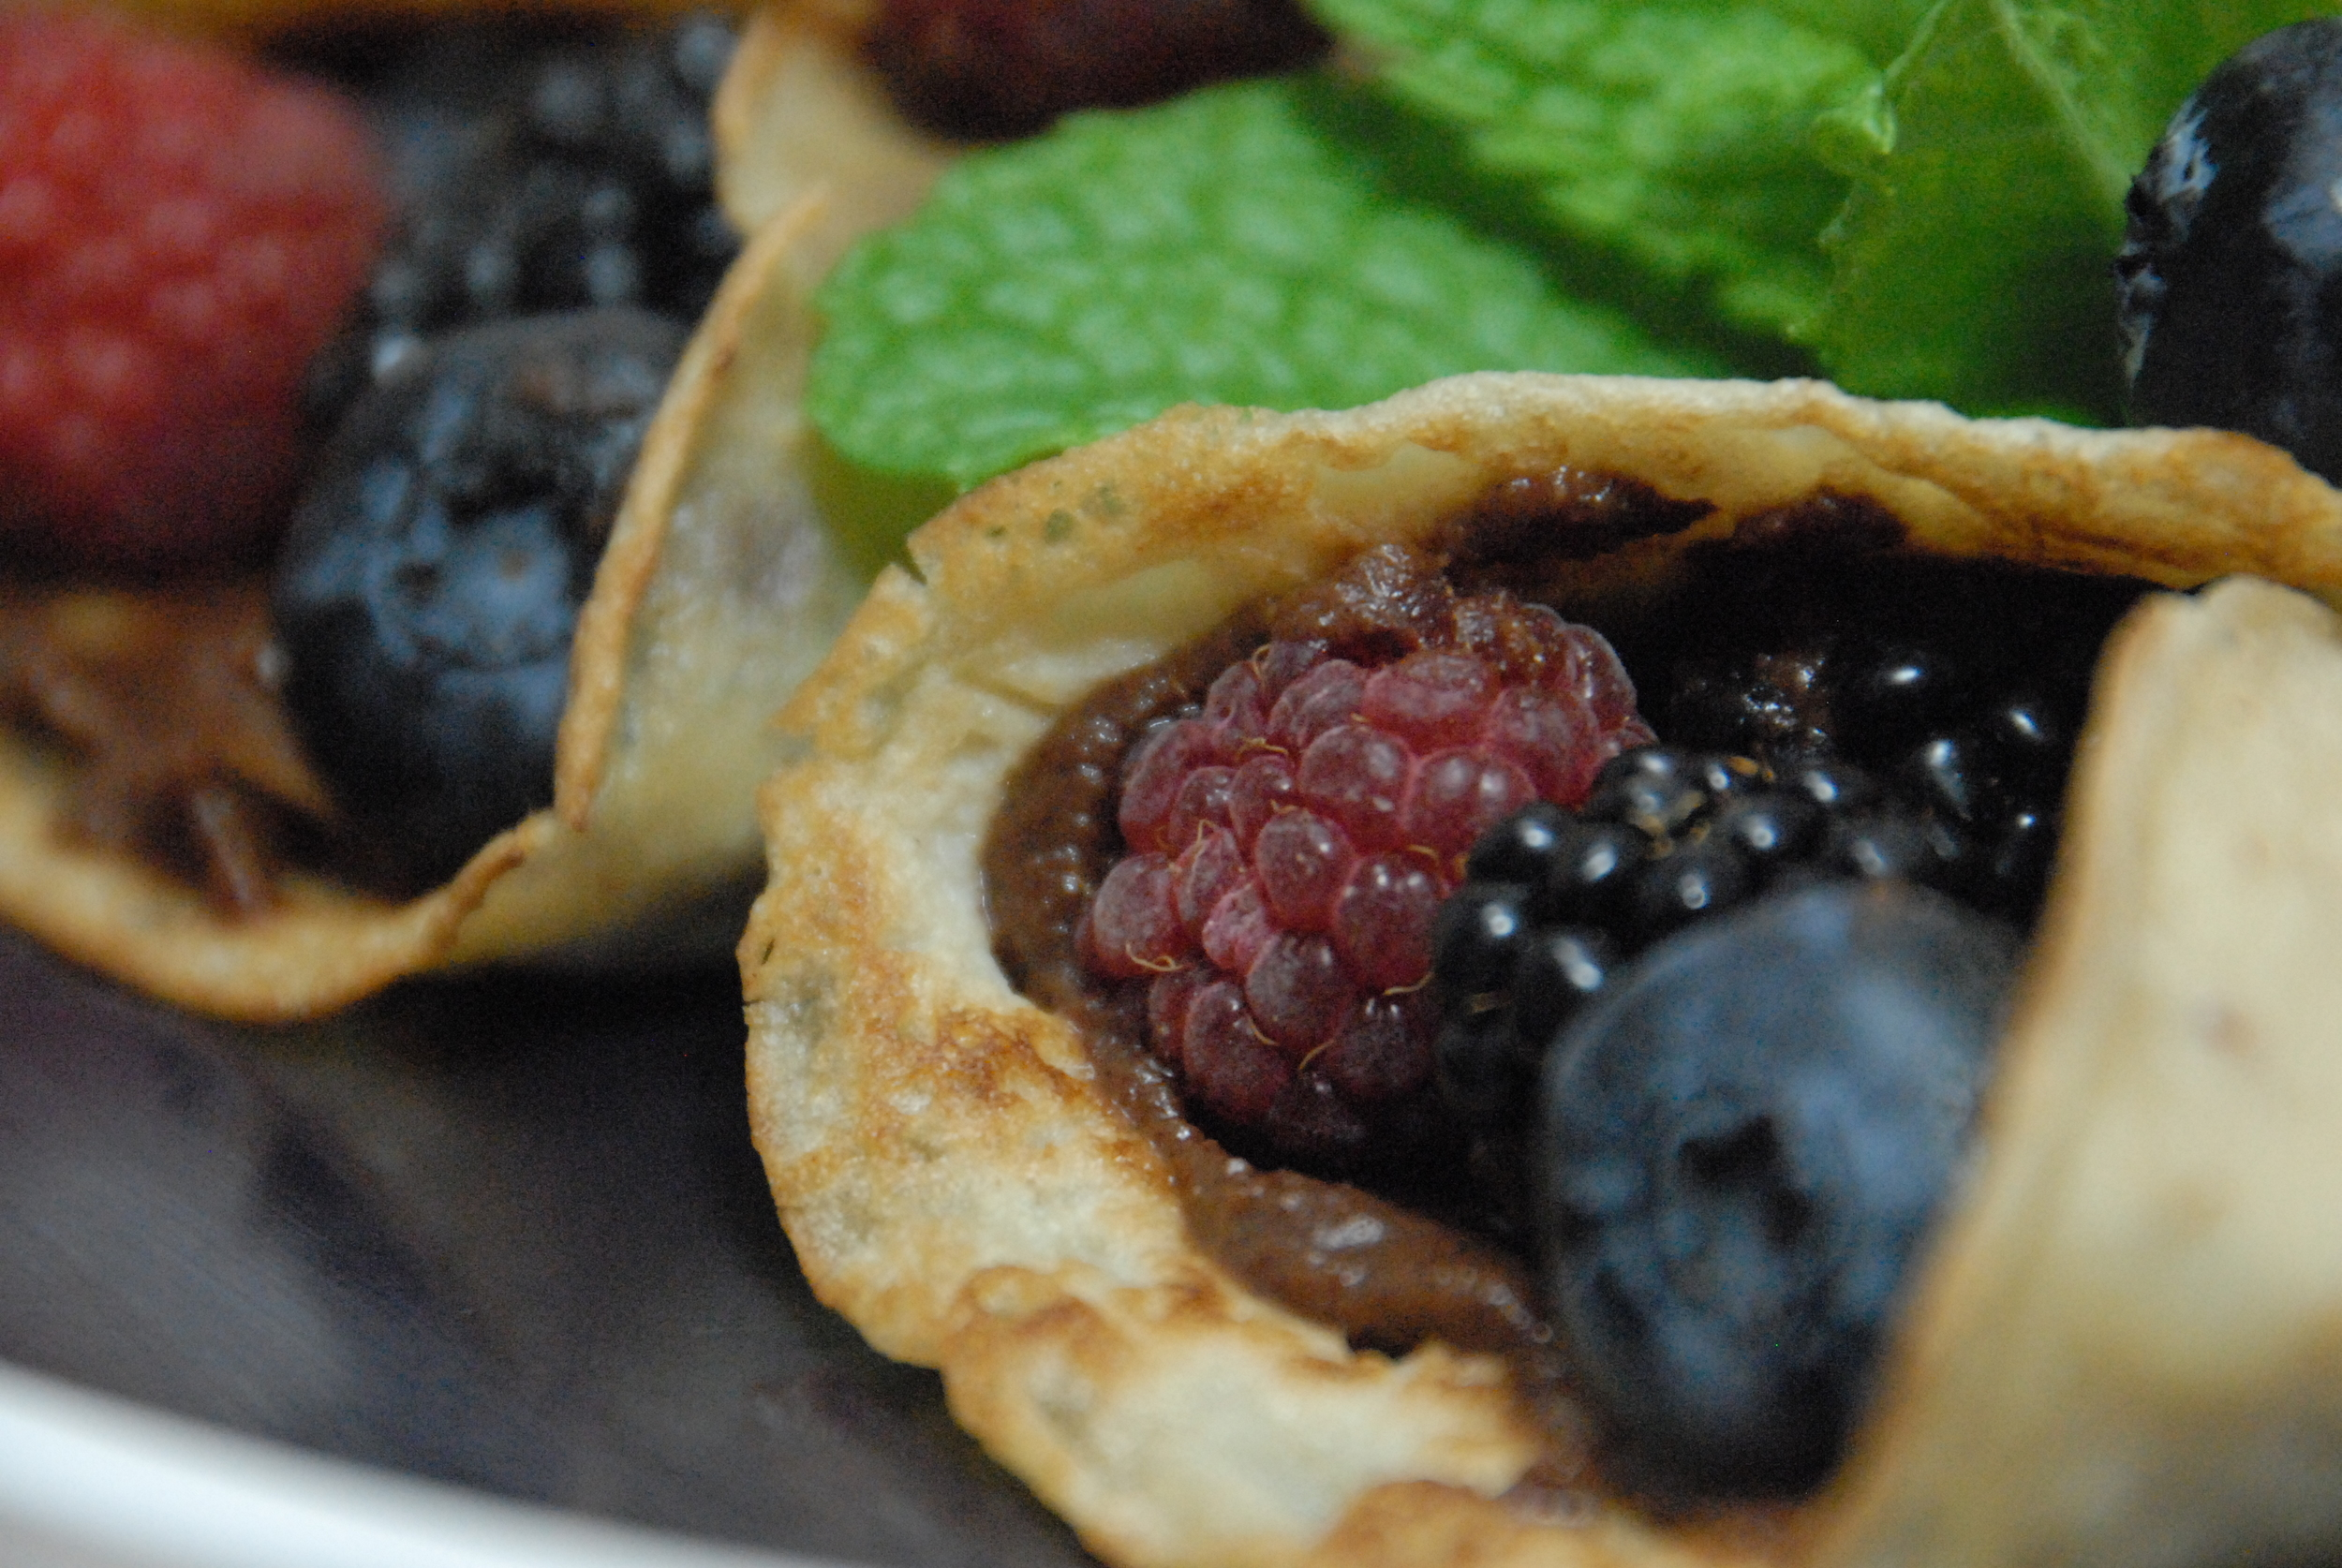 Fruit-filled crepes with chocolate espresso spread.